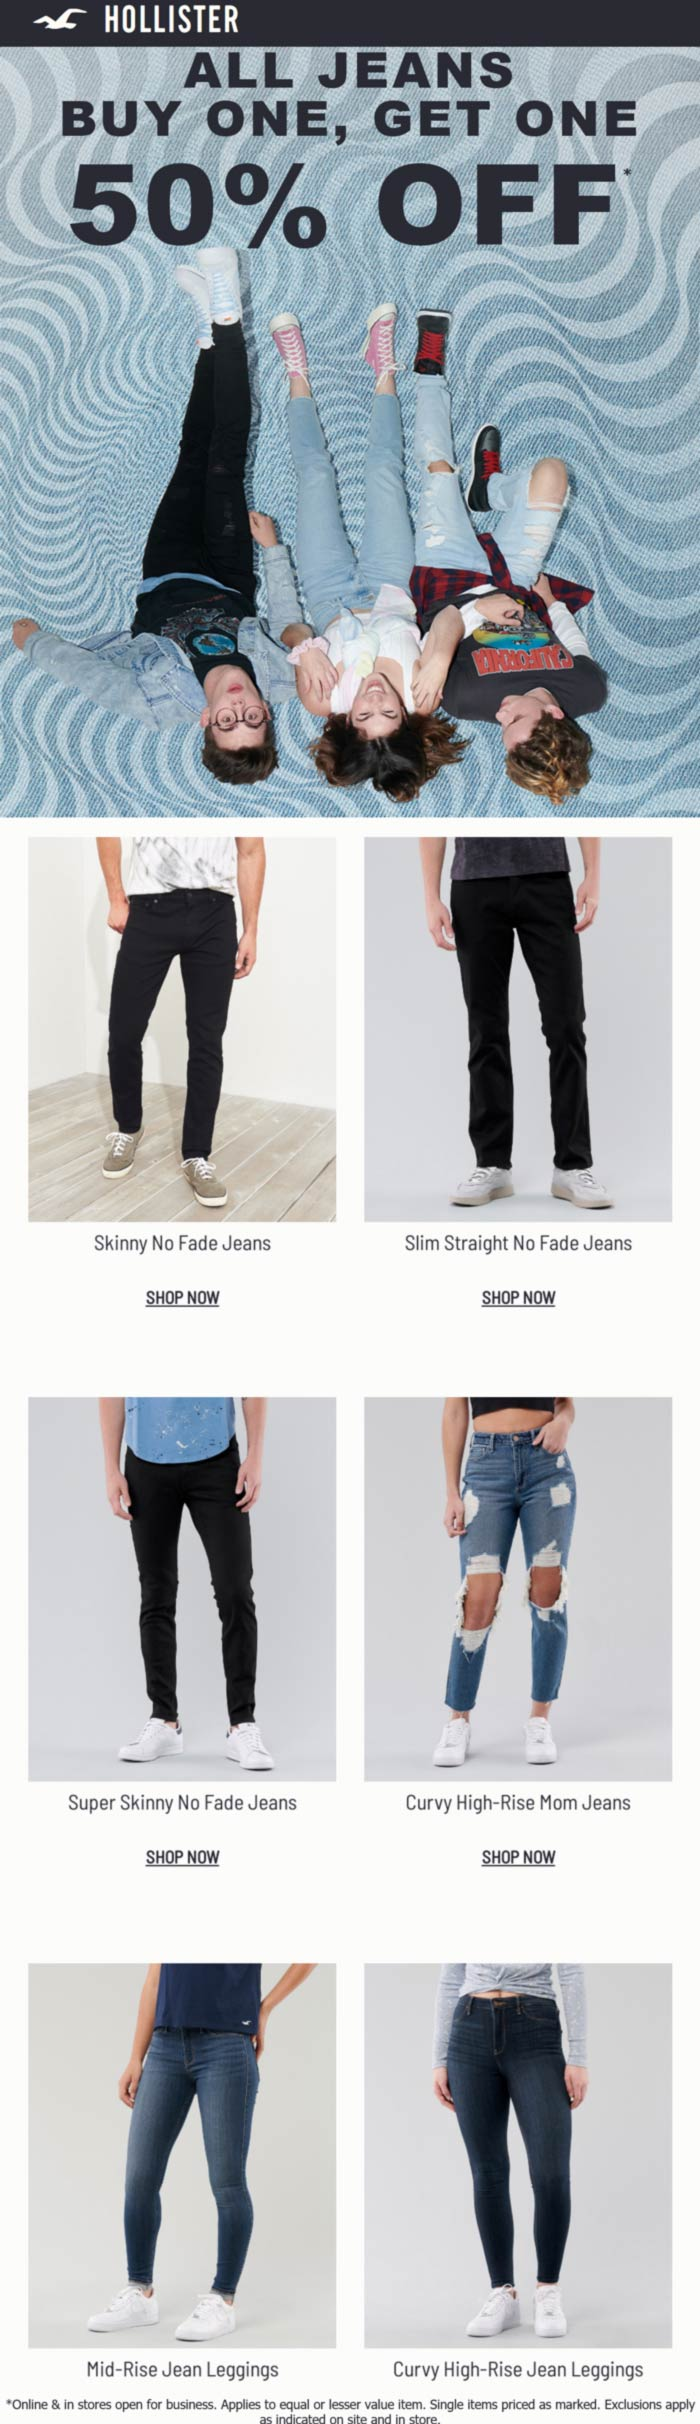 Hollister stores Coupon  Second pair jeans 50% off at Hollister, ditto online #hollister